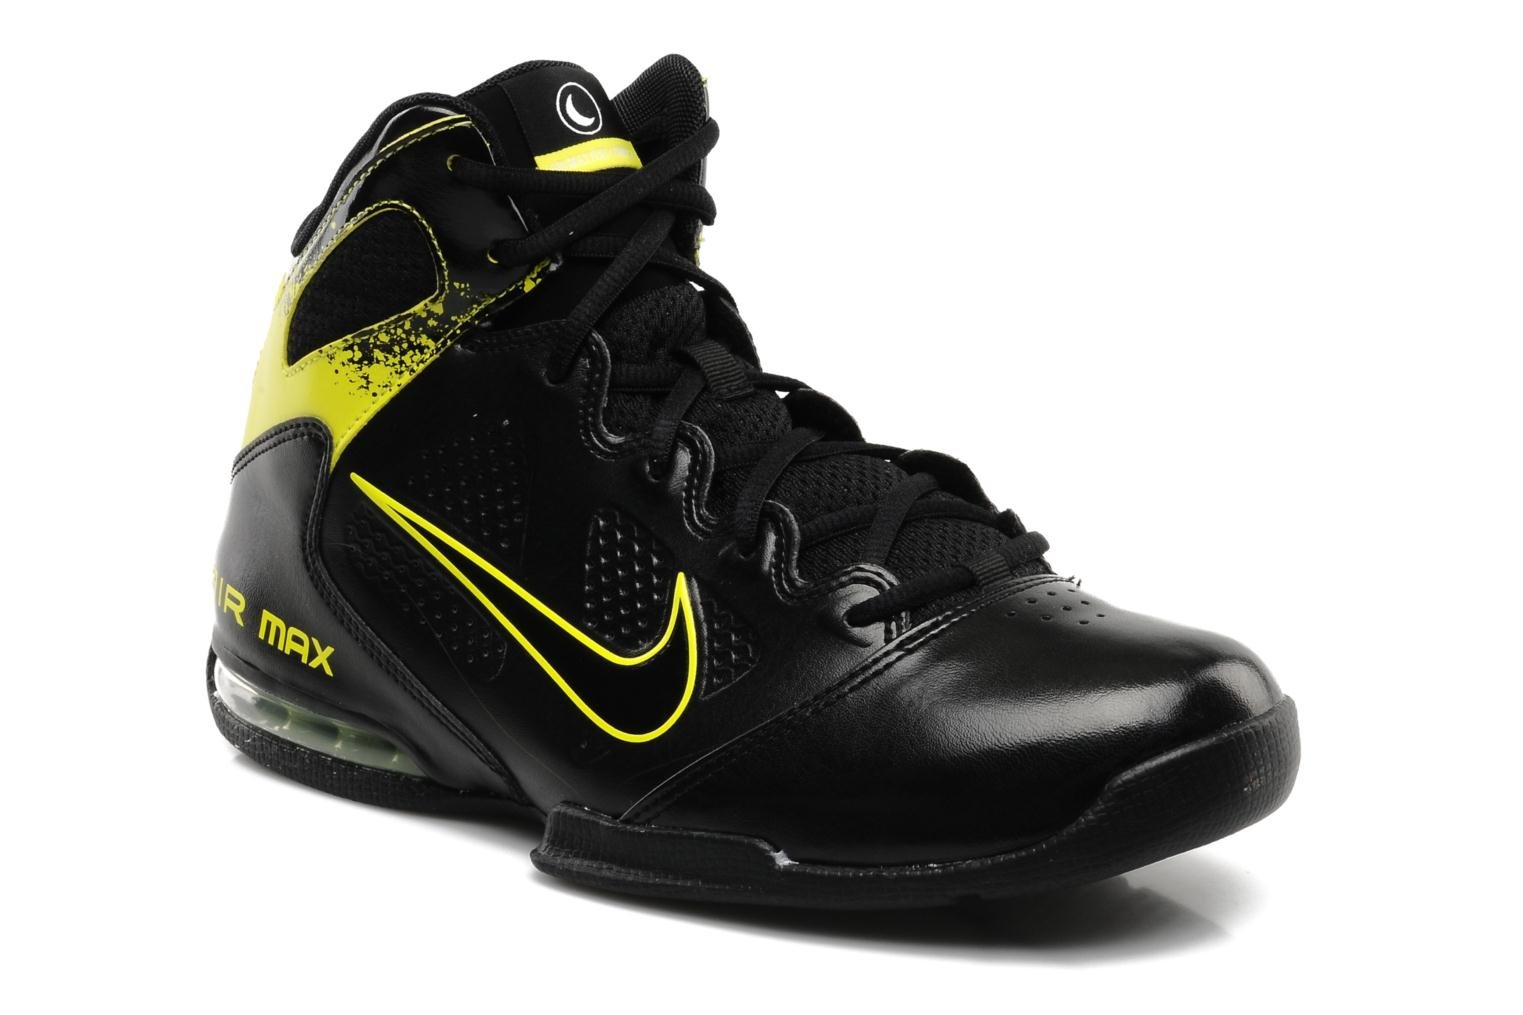 Air max full court 2 nt Black black-electolime-black